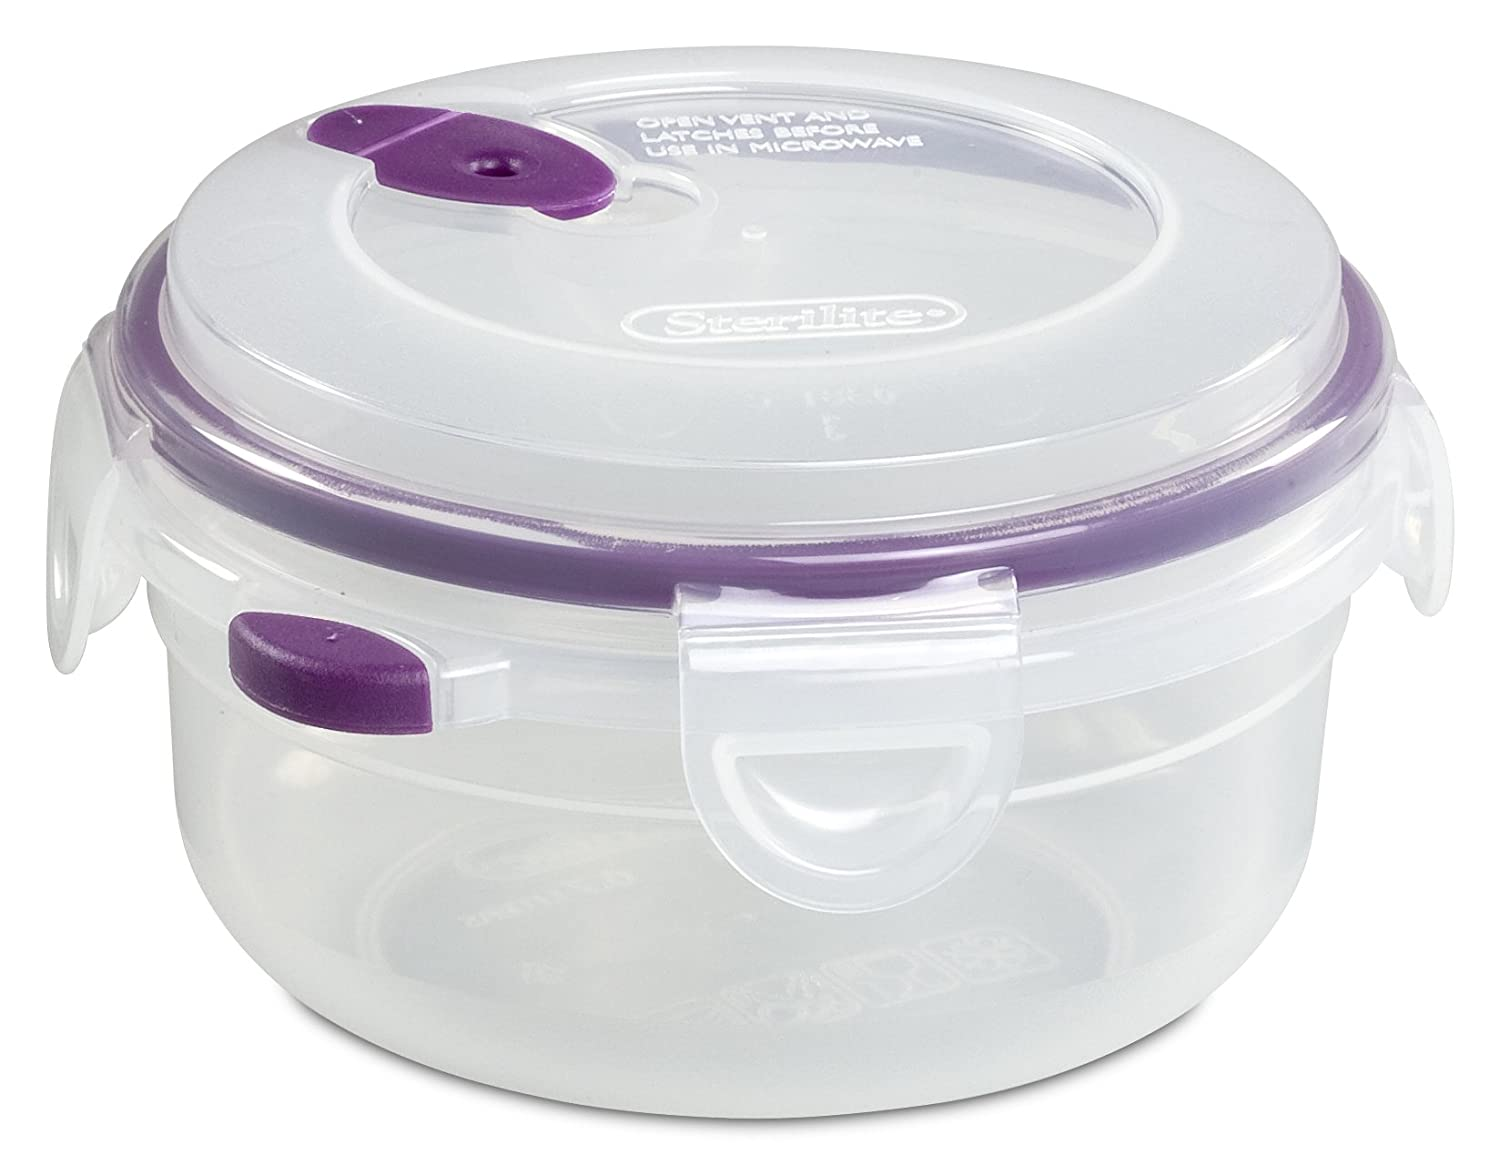 Amazon.com: Sterilite 03811706 Ultra Seal 3 Cup Food Storage Container,  See Through Lid U0026 Base With Sweet Plum Accents, 6 Pack: Food Storage  Containers: ...